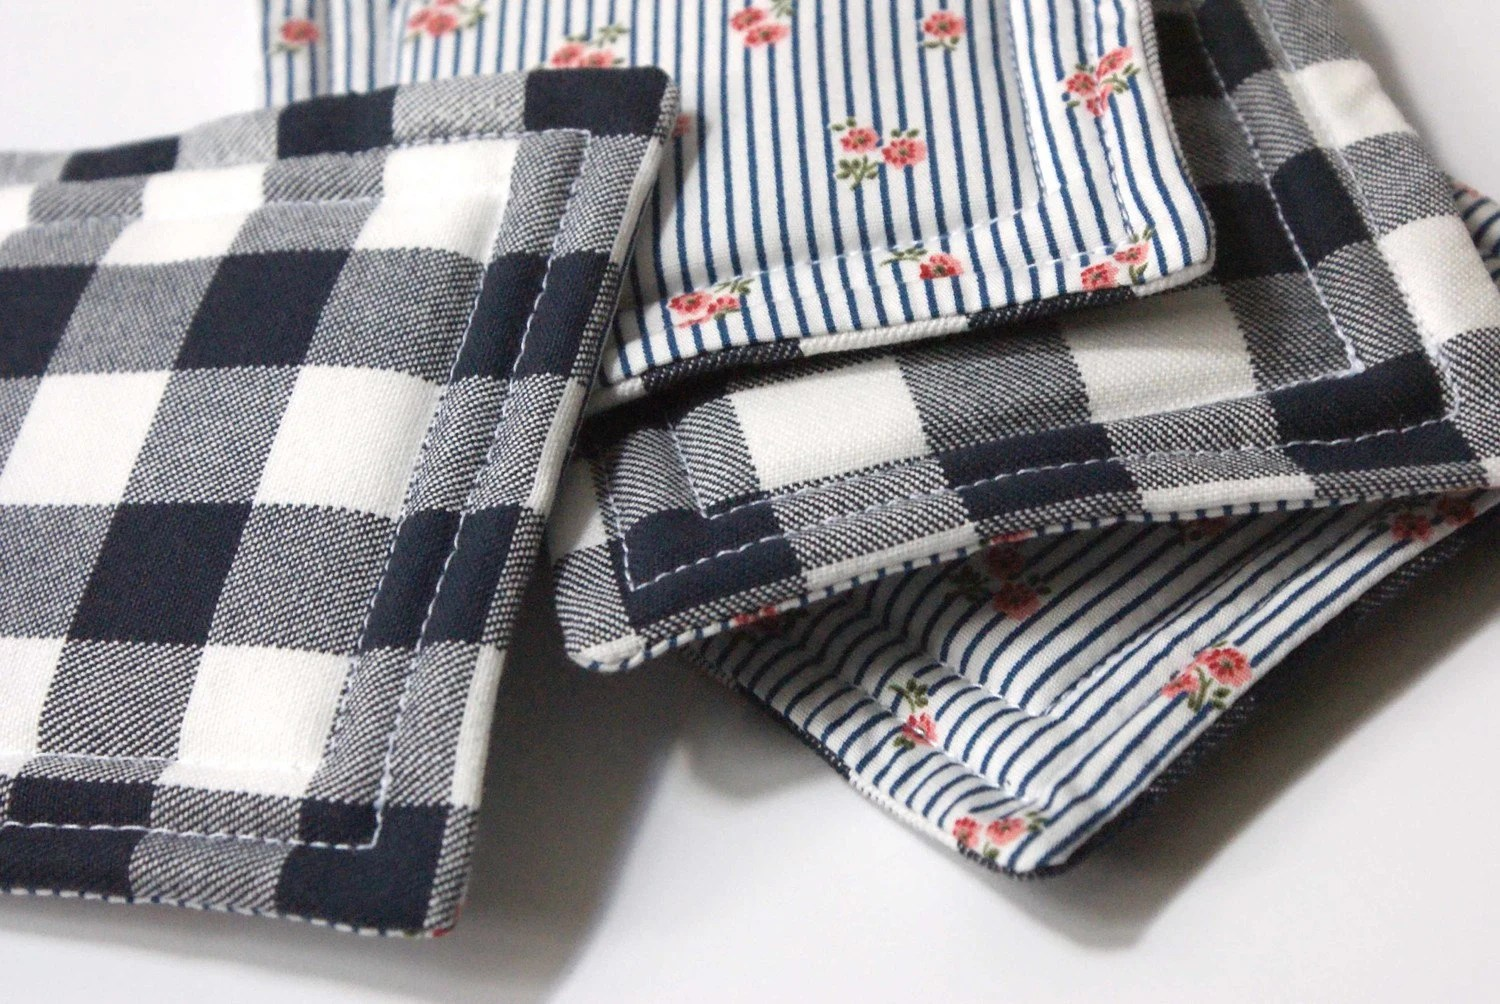 Reversible Quilted Fabric Coasters, Navy Floral/Checkered -- Set of 4